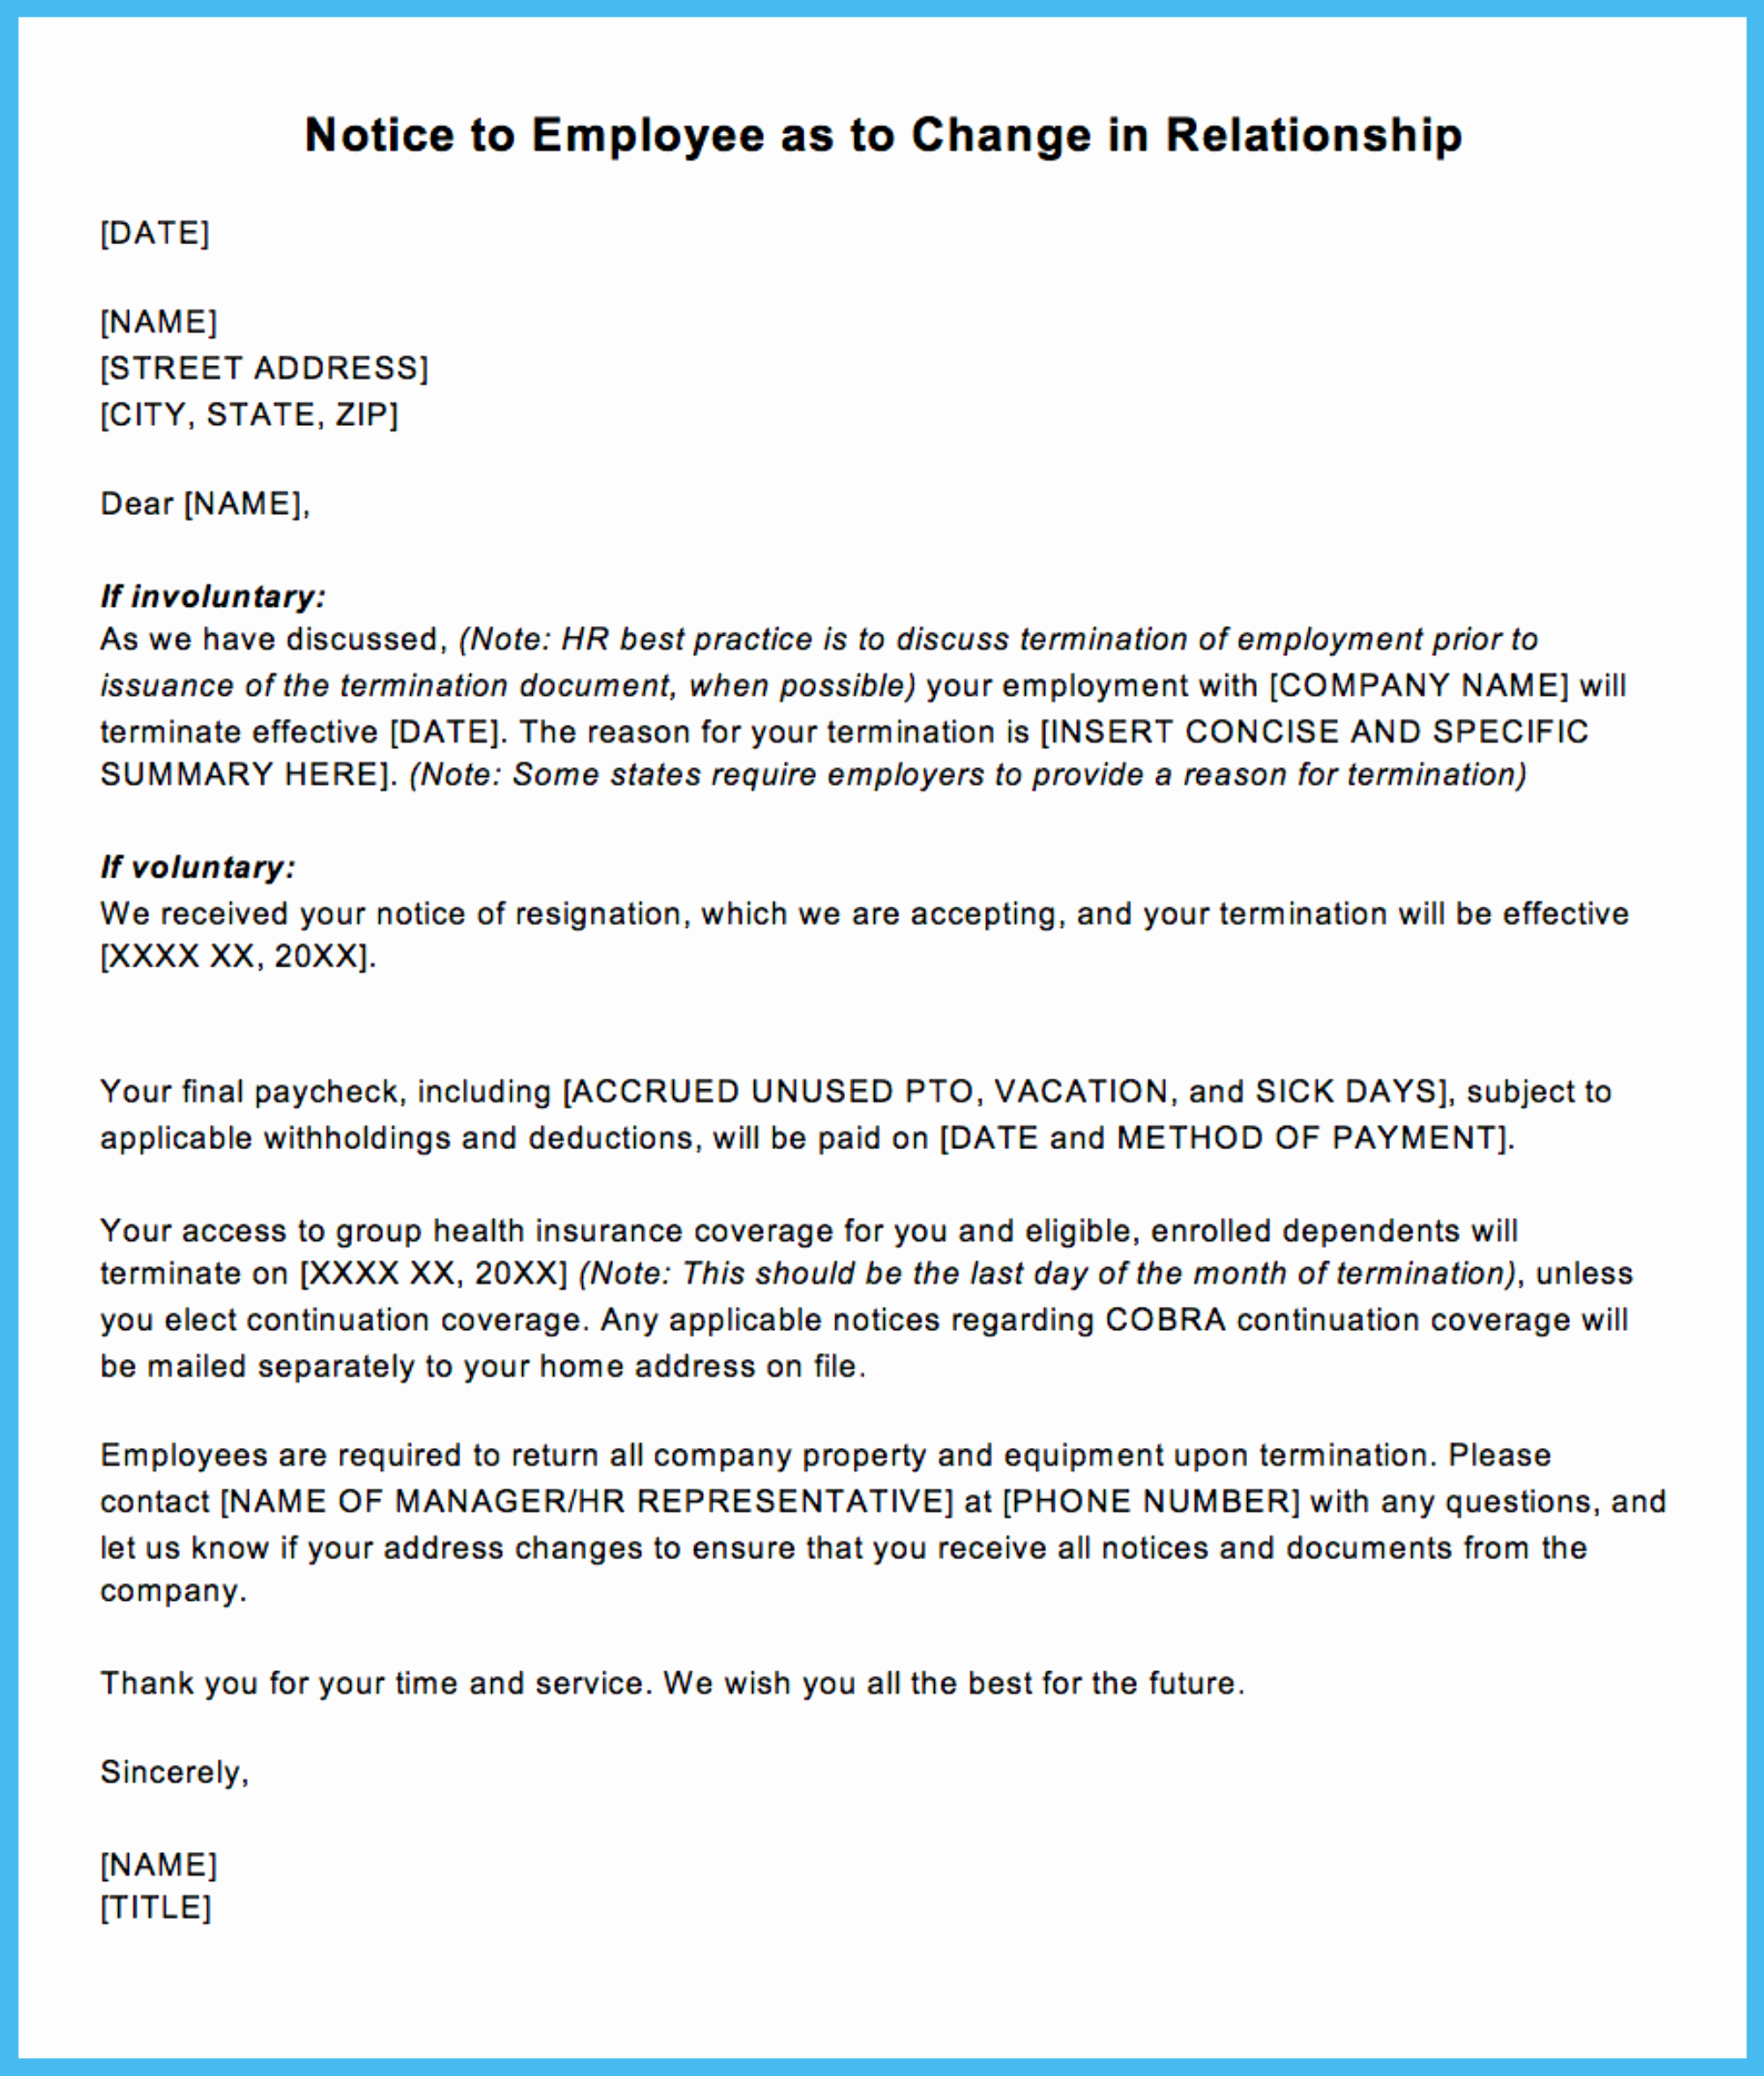 Termination Of Employment Letter Beautiful Sample Termination Letter for Letting An Employee Go